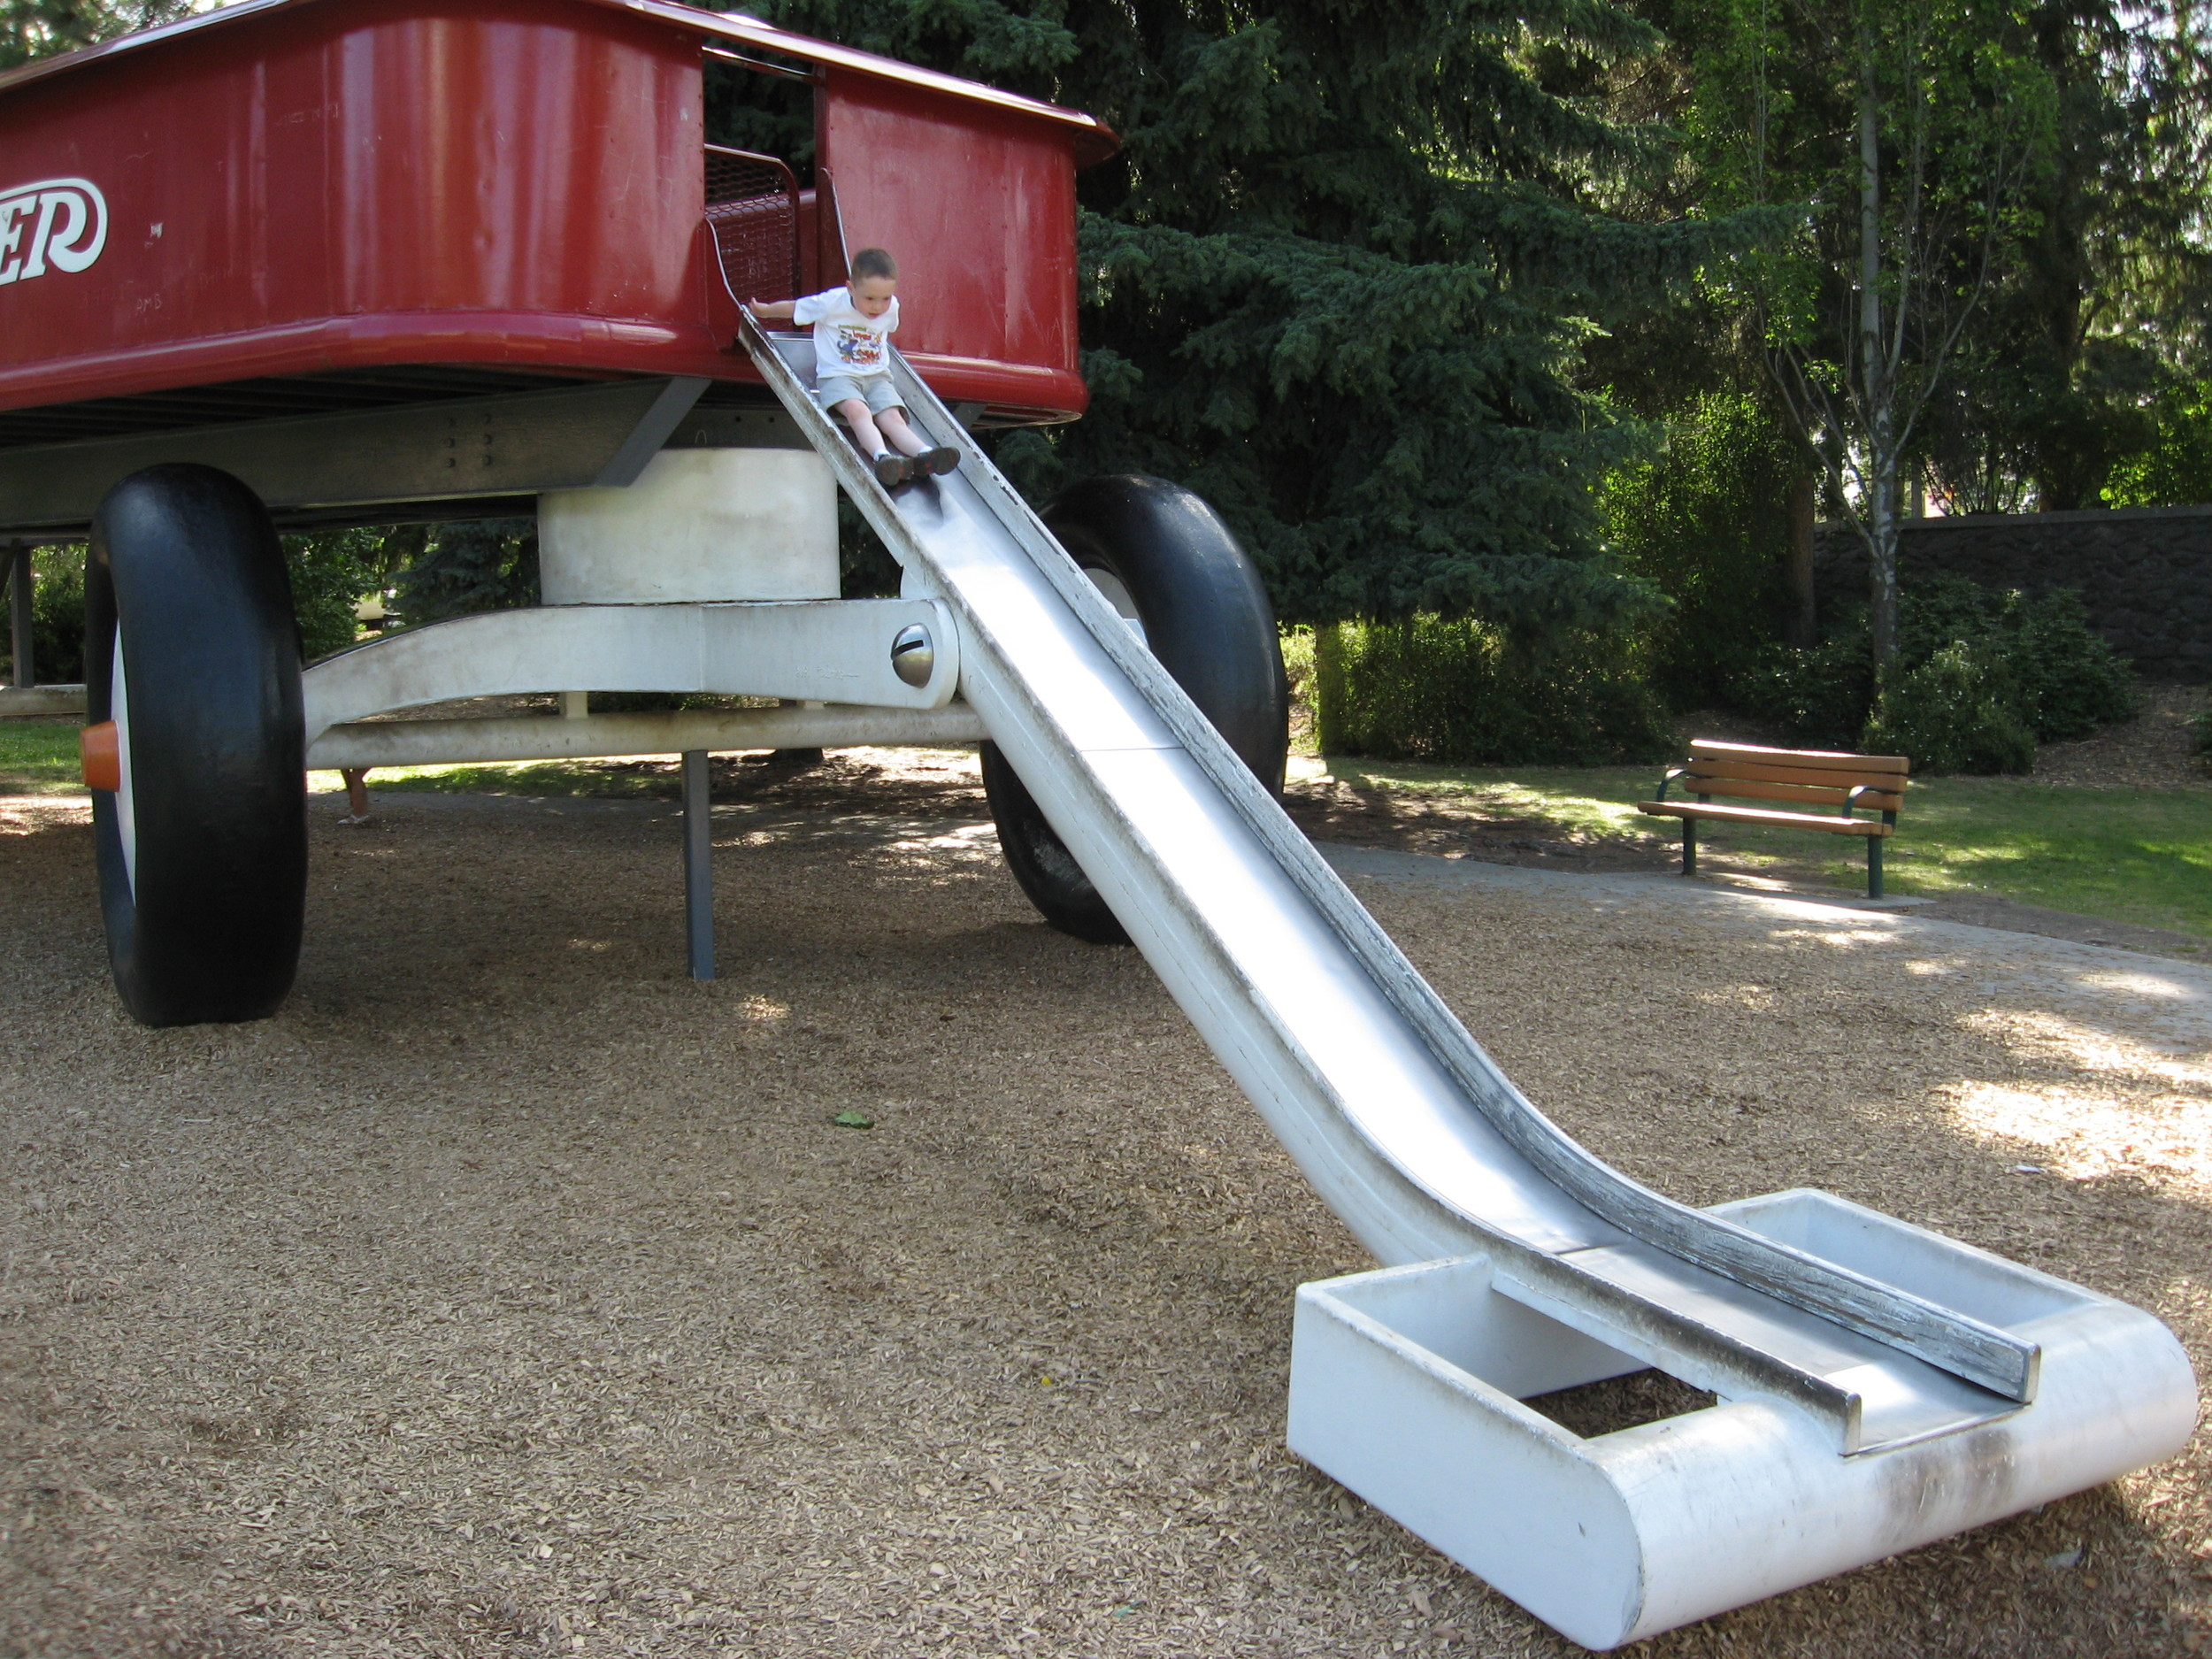 The world's largest red wagon becomes a playground slide.